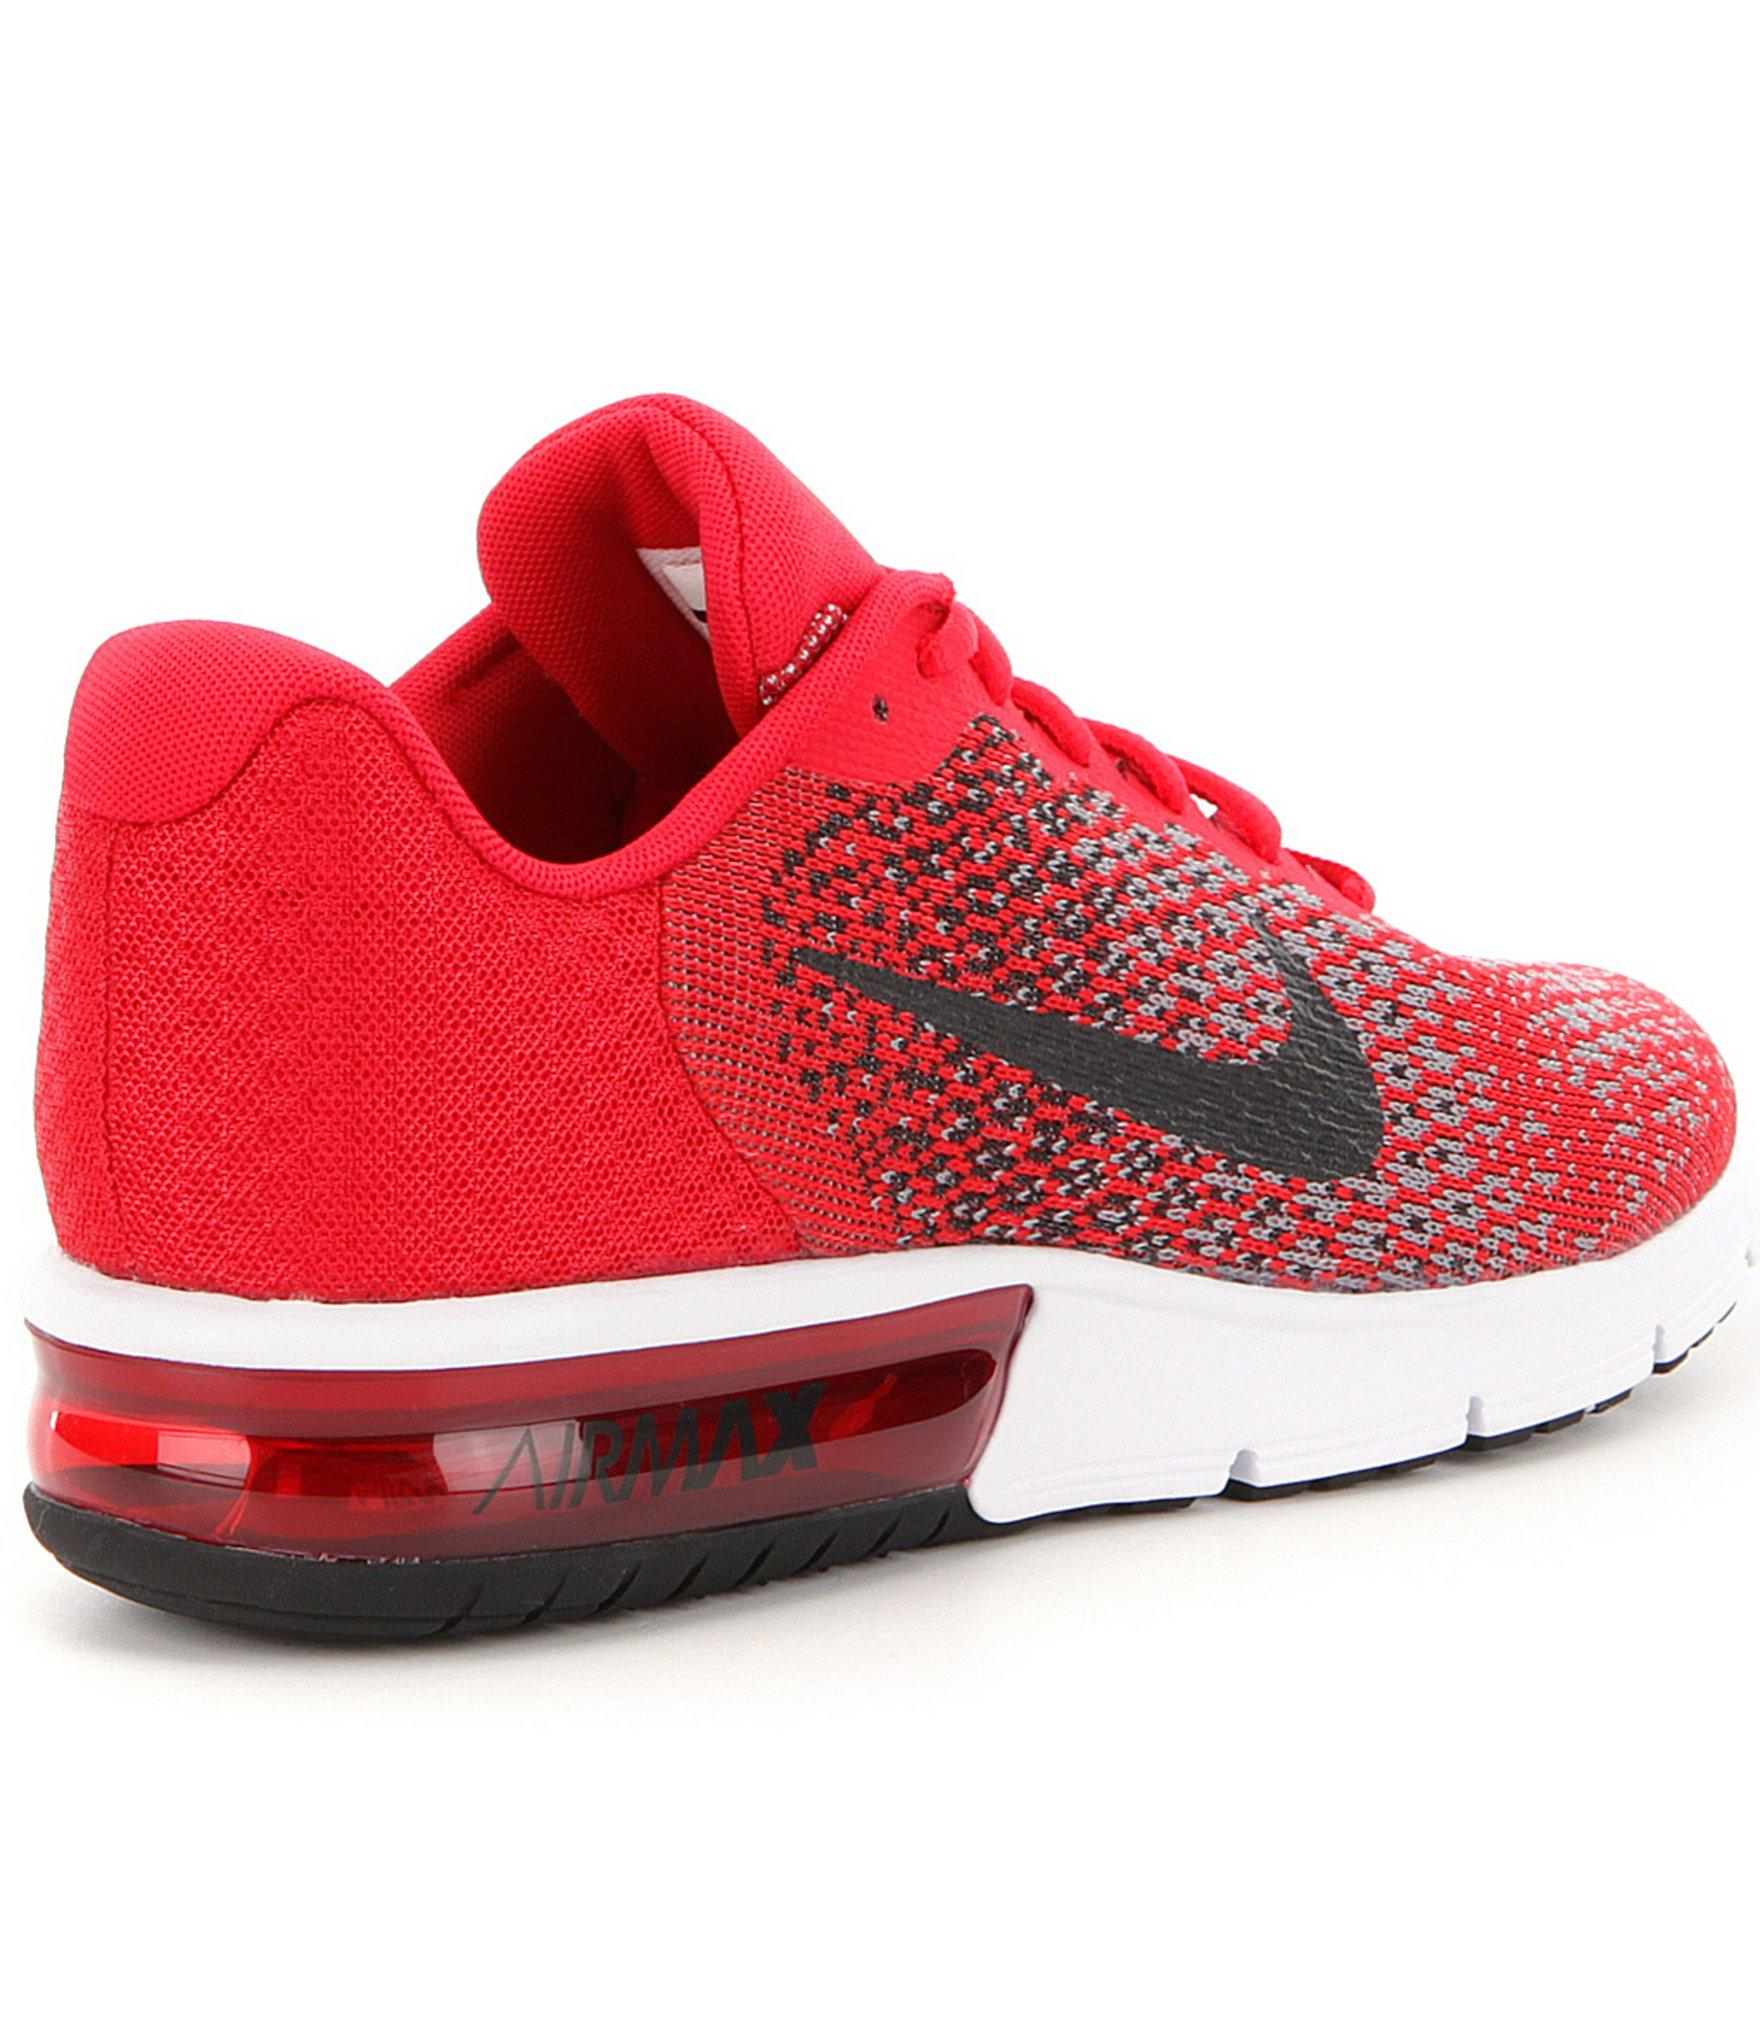 Lyst - Nike Men ́s Air Max Sequent 2 Knit Lace-up Running Shoe in ... d279571b7